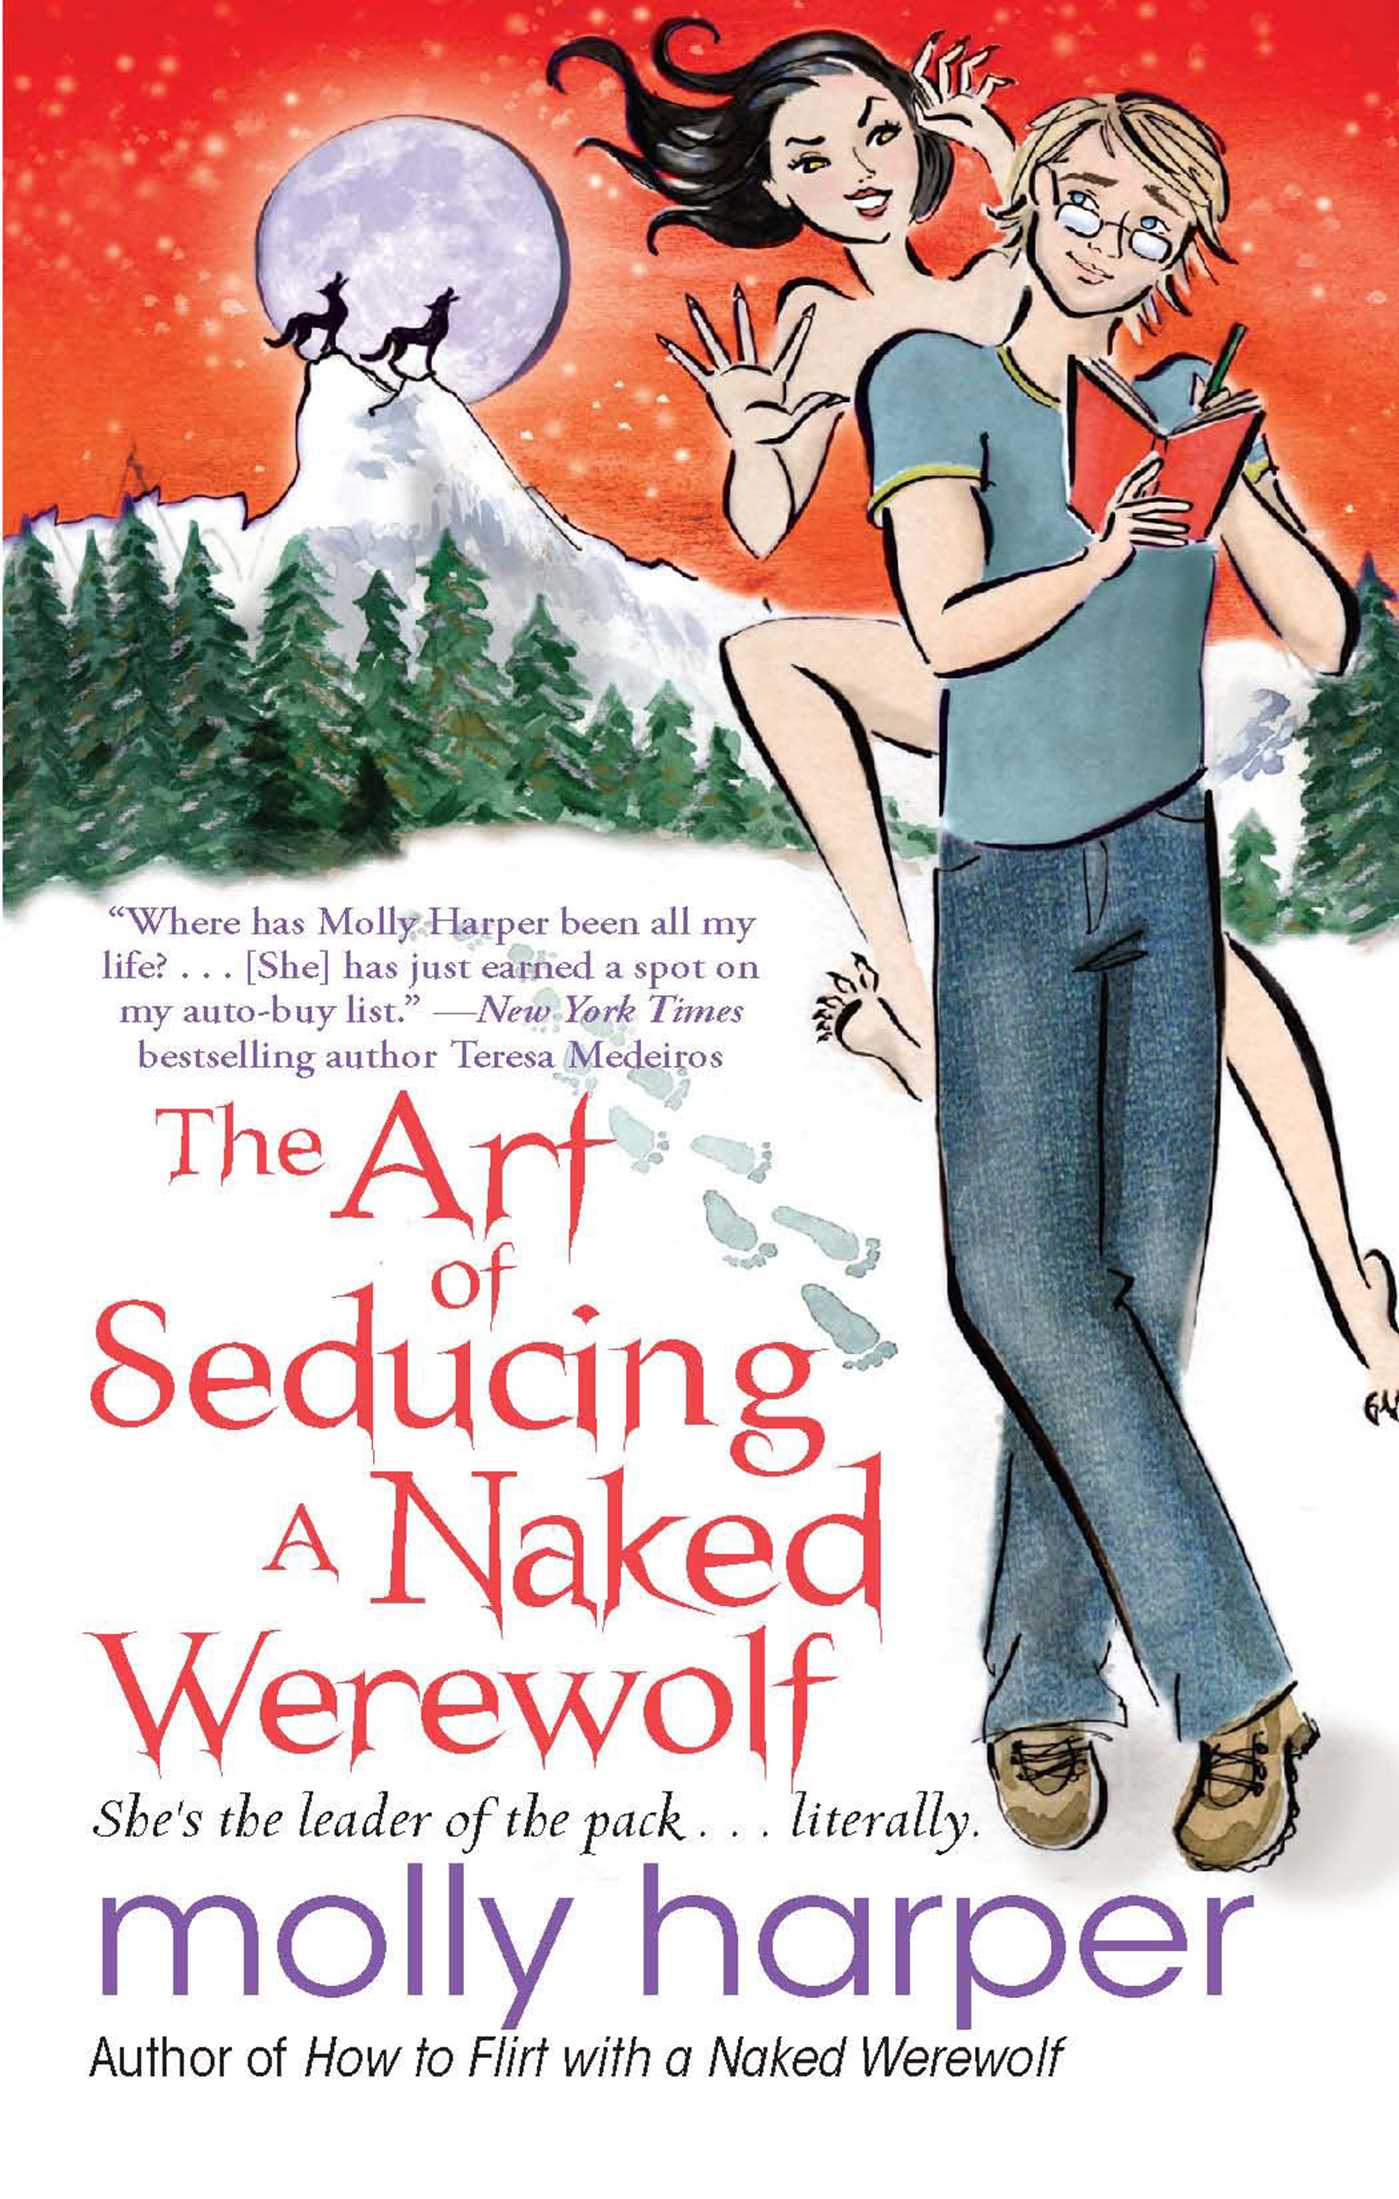 The art of seducing a naked werewolf 9781439195895 hr